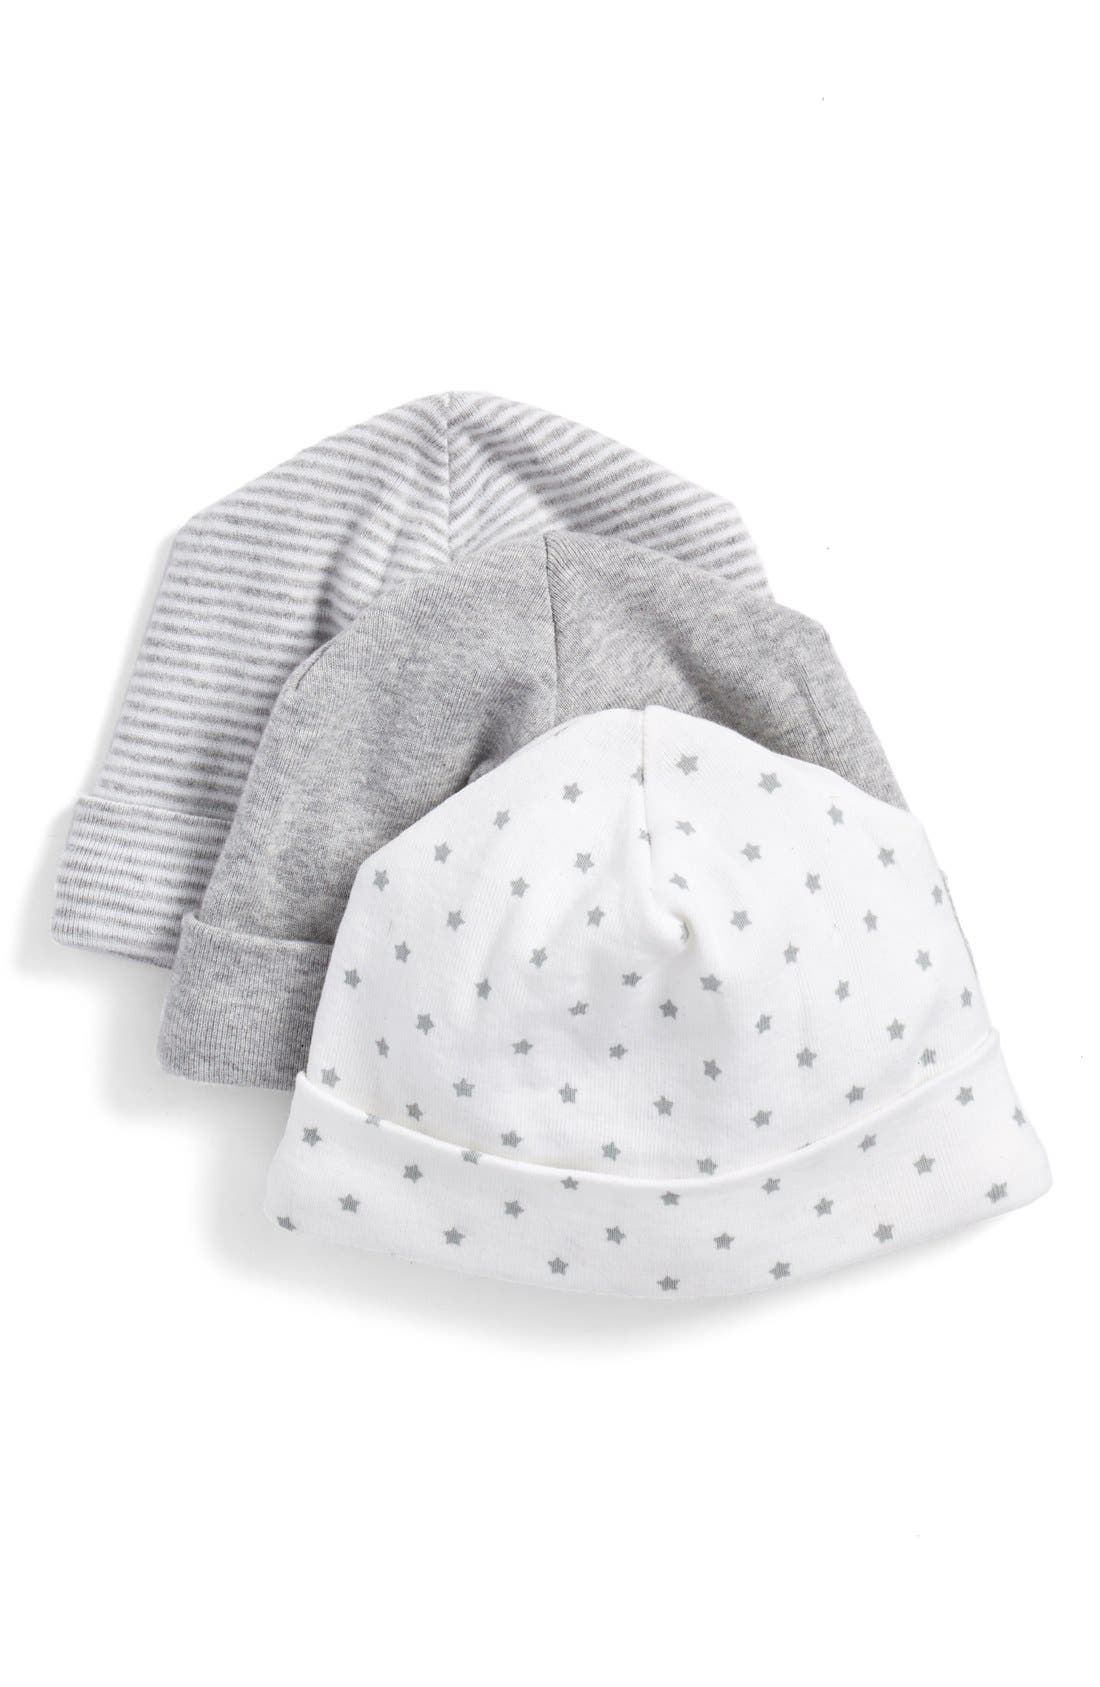 Cotton Hats,                             Main thumbnail 1, color,                             GREY ASH HEATHER PACK